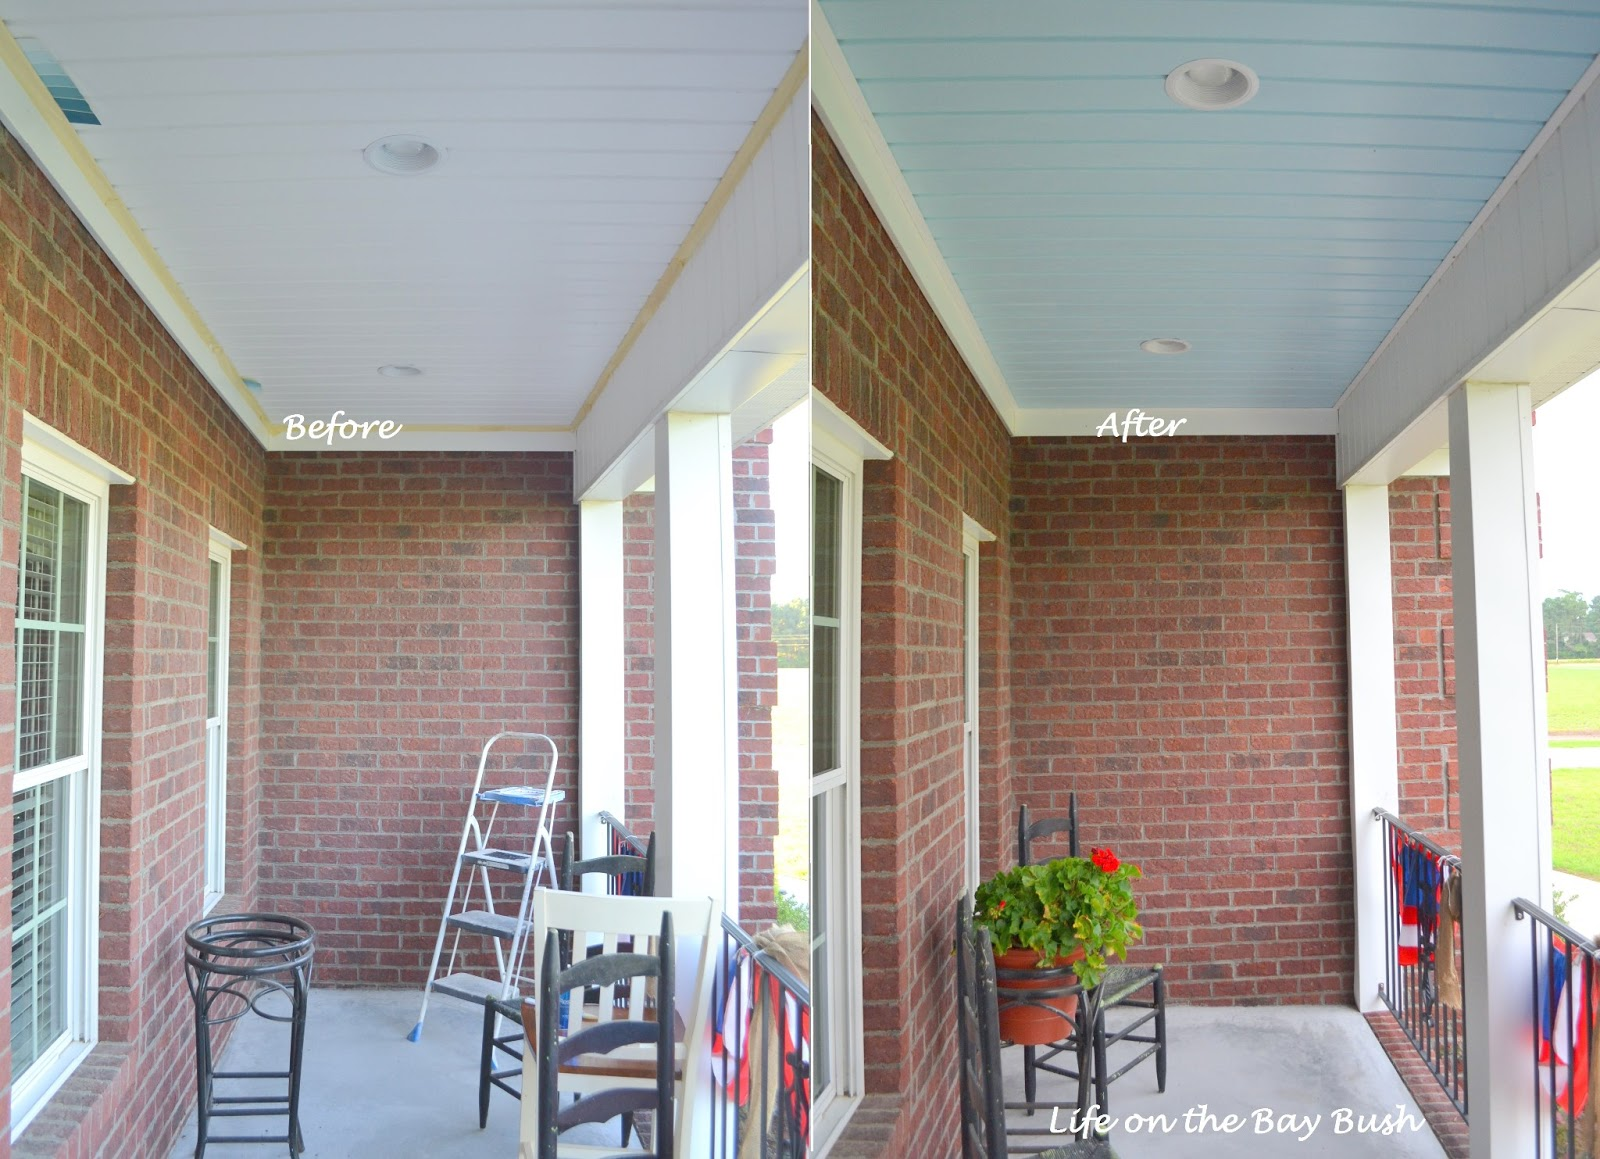 Painted Porch Ceiling - Life on the Bay Bush on carport plans product, carport designs, garage lighting ideas, carport kits, garage shelving ideas, outdoor room ideas, small screen porch decorating ideas, garage insulation ideas, car port design ideas, basement bedroom ideas, wooden ceilings ideas, garage wall material ideas,